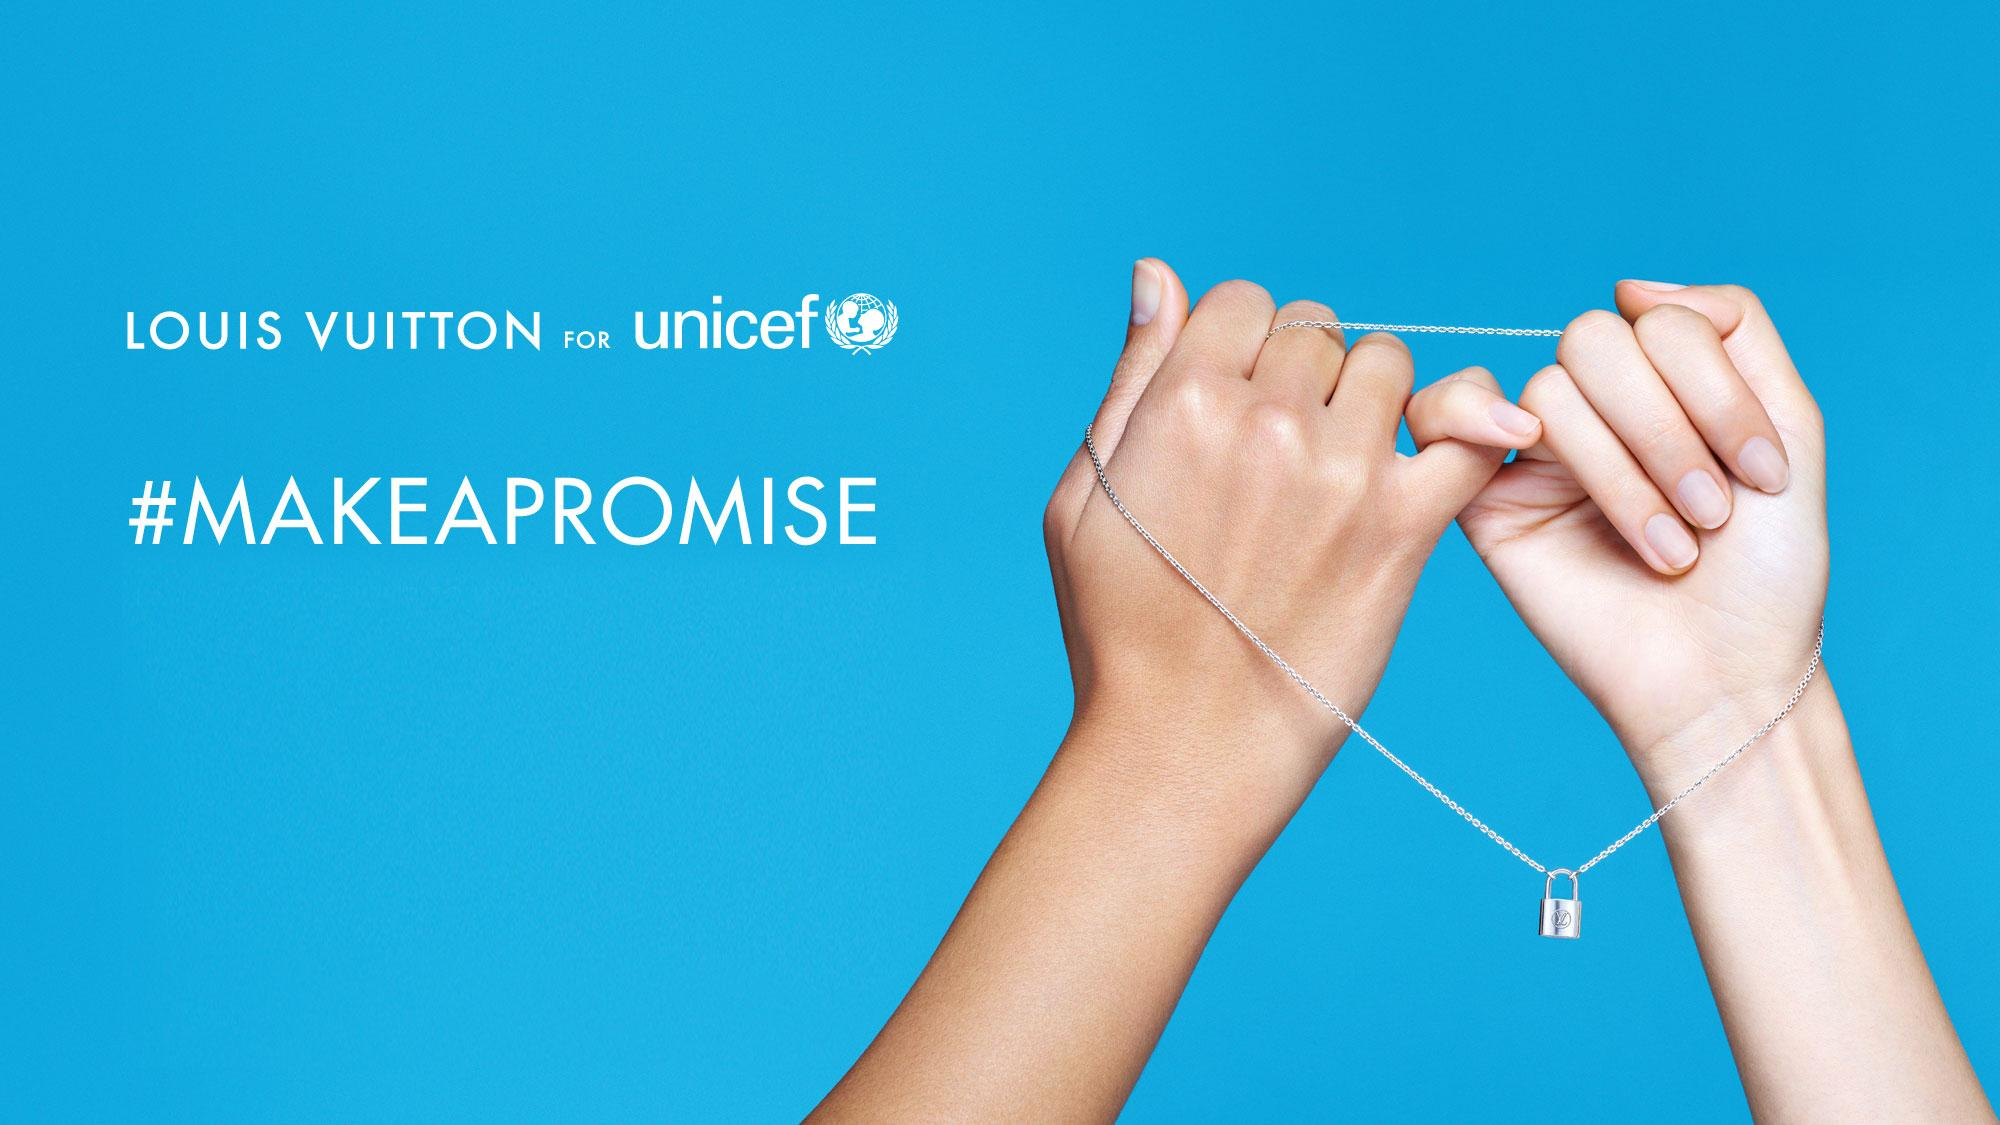 LOUIS VUITTON for UNICEF  MAKEAPROMISE